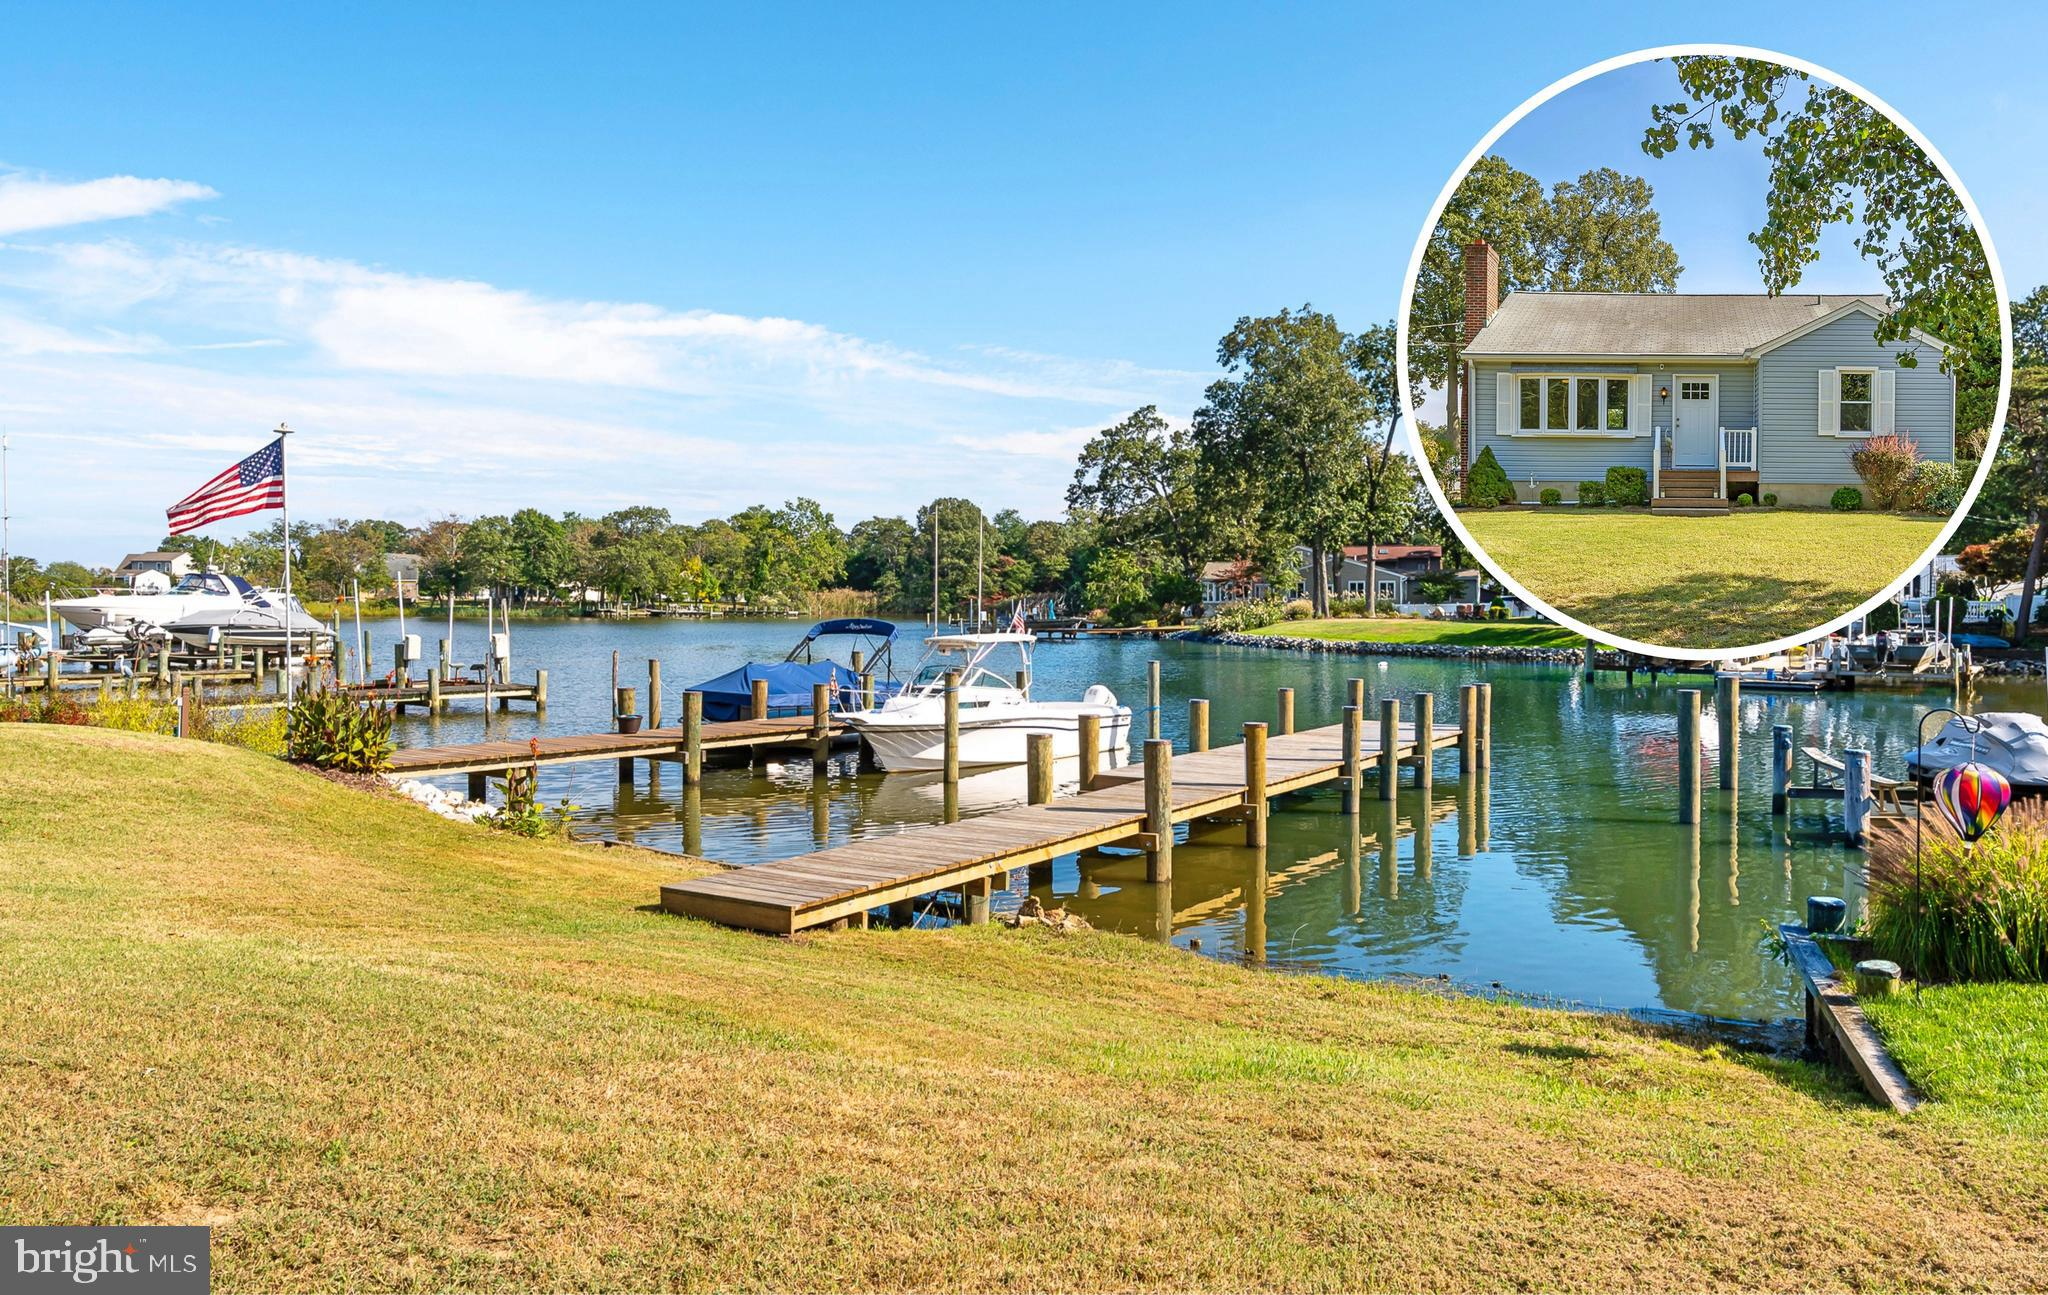 Amazing Waterfront property in the sought-after community of Shore Acres. Tranquil water views are offered from both the front and rear of the home. Enjoy the ease of convenient no-hassle water access to Gibson Island and the Bay Bridge. Keep your boat in one of two slips located on your private pier. There is also a community boat ramp. After a long day of boating, relax or entertain in your beautifully renovated 3 Bedroom 2 Full Bath home. The updated Primary Bedroom is your own personal retreat after a long day of fun in the sun. The remodeled Kitchen makes entertaining a delight with updated appliances and ample storage. No need to worry about trying to get sand and dirt off your carpets, hardwood floors offer beauty and help make cleaning less burdensome. No need to sweat the small stuff thanks to the updated HVAC system. Other updates include a new Septic System that was updated in 2021. Envision yourself living in your own personal retreat. Book your appointment today!